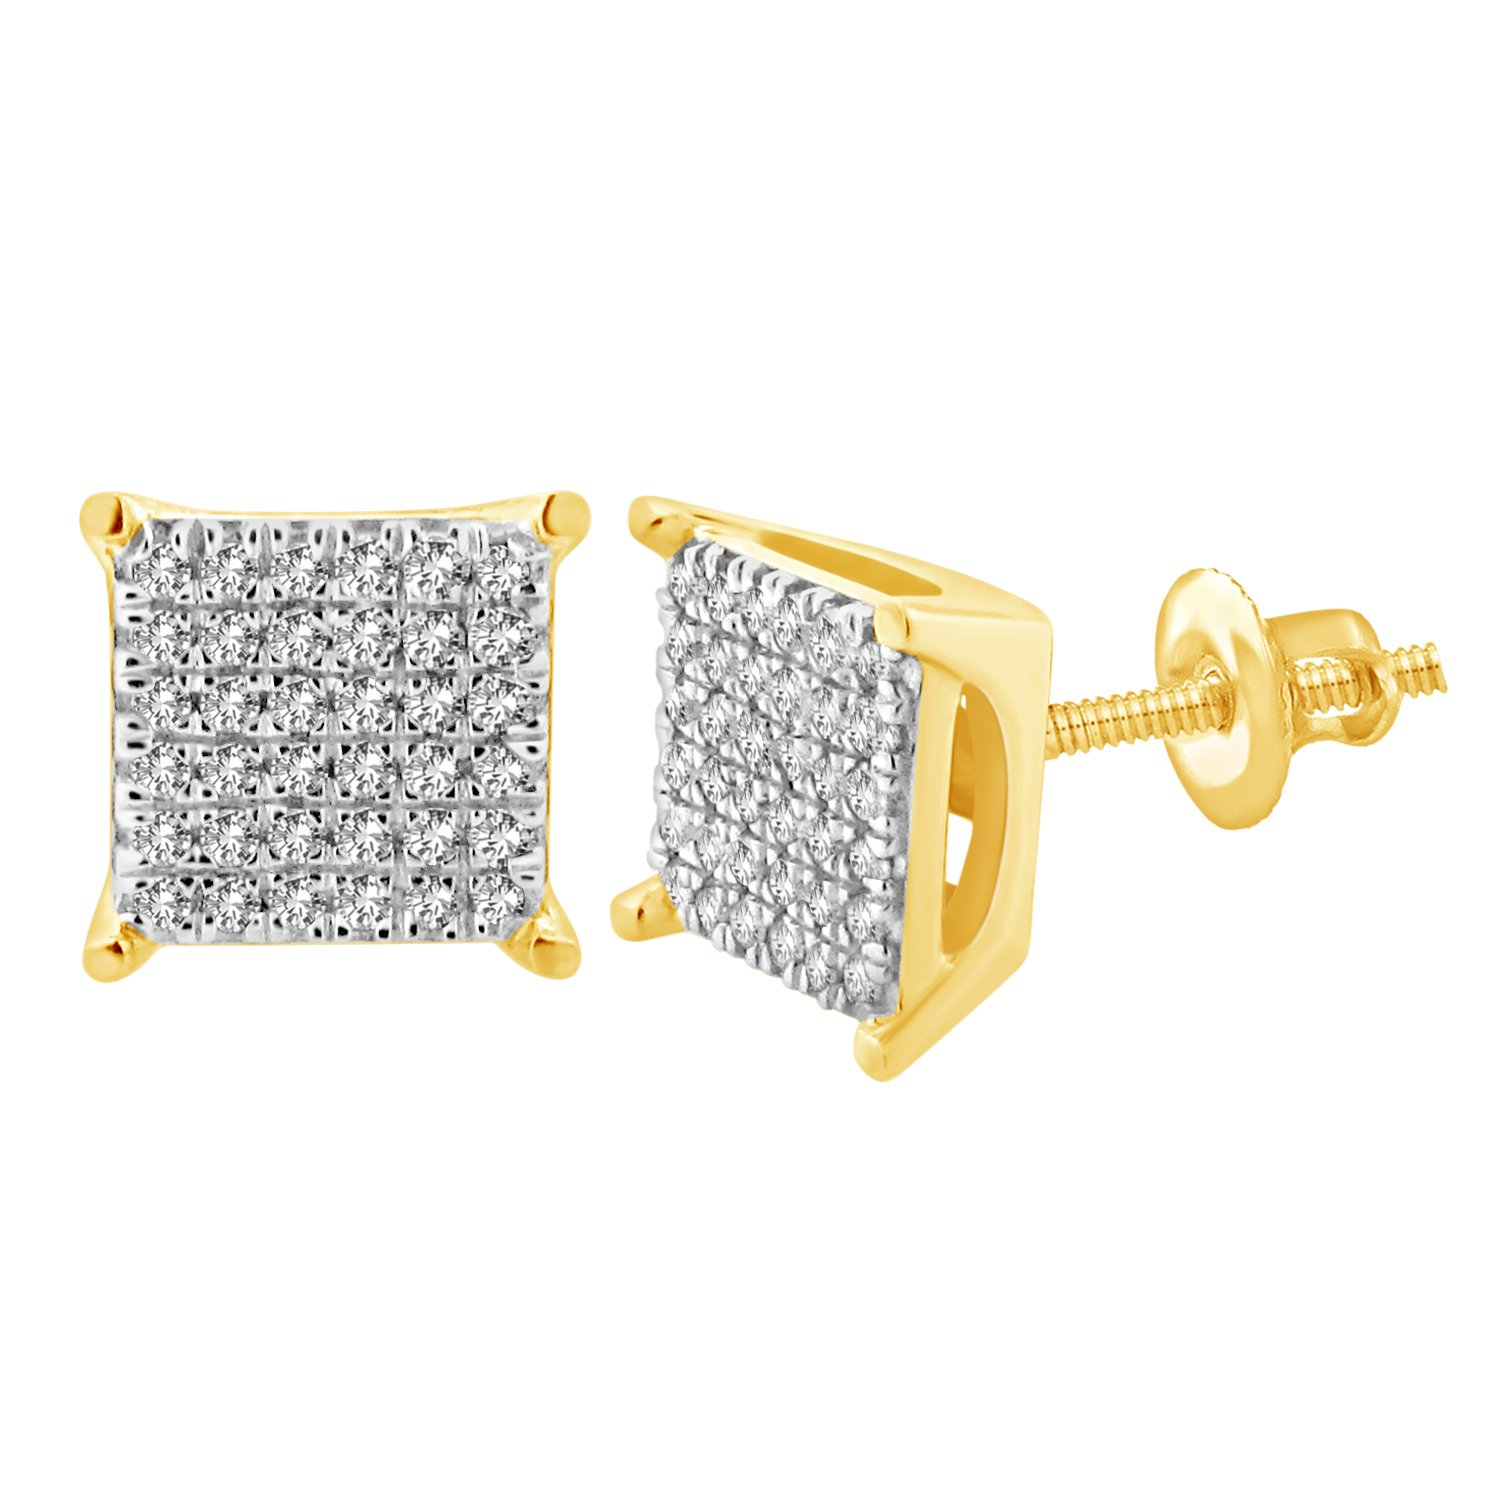 Men's and Women's 10k Yellow Gold 1/4 cttw Single-Cut Natural Diamonds Stud Earrings by eSparkle